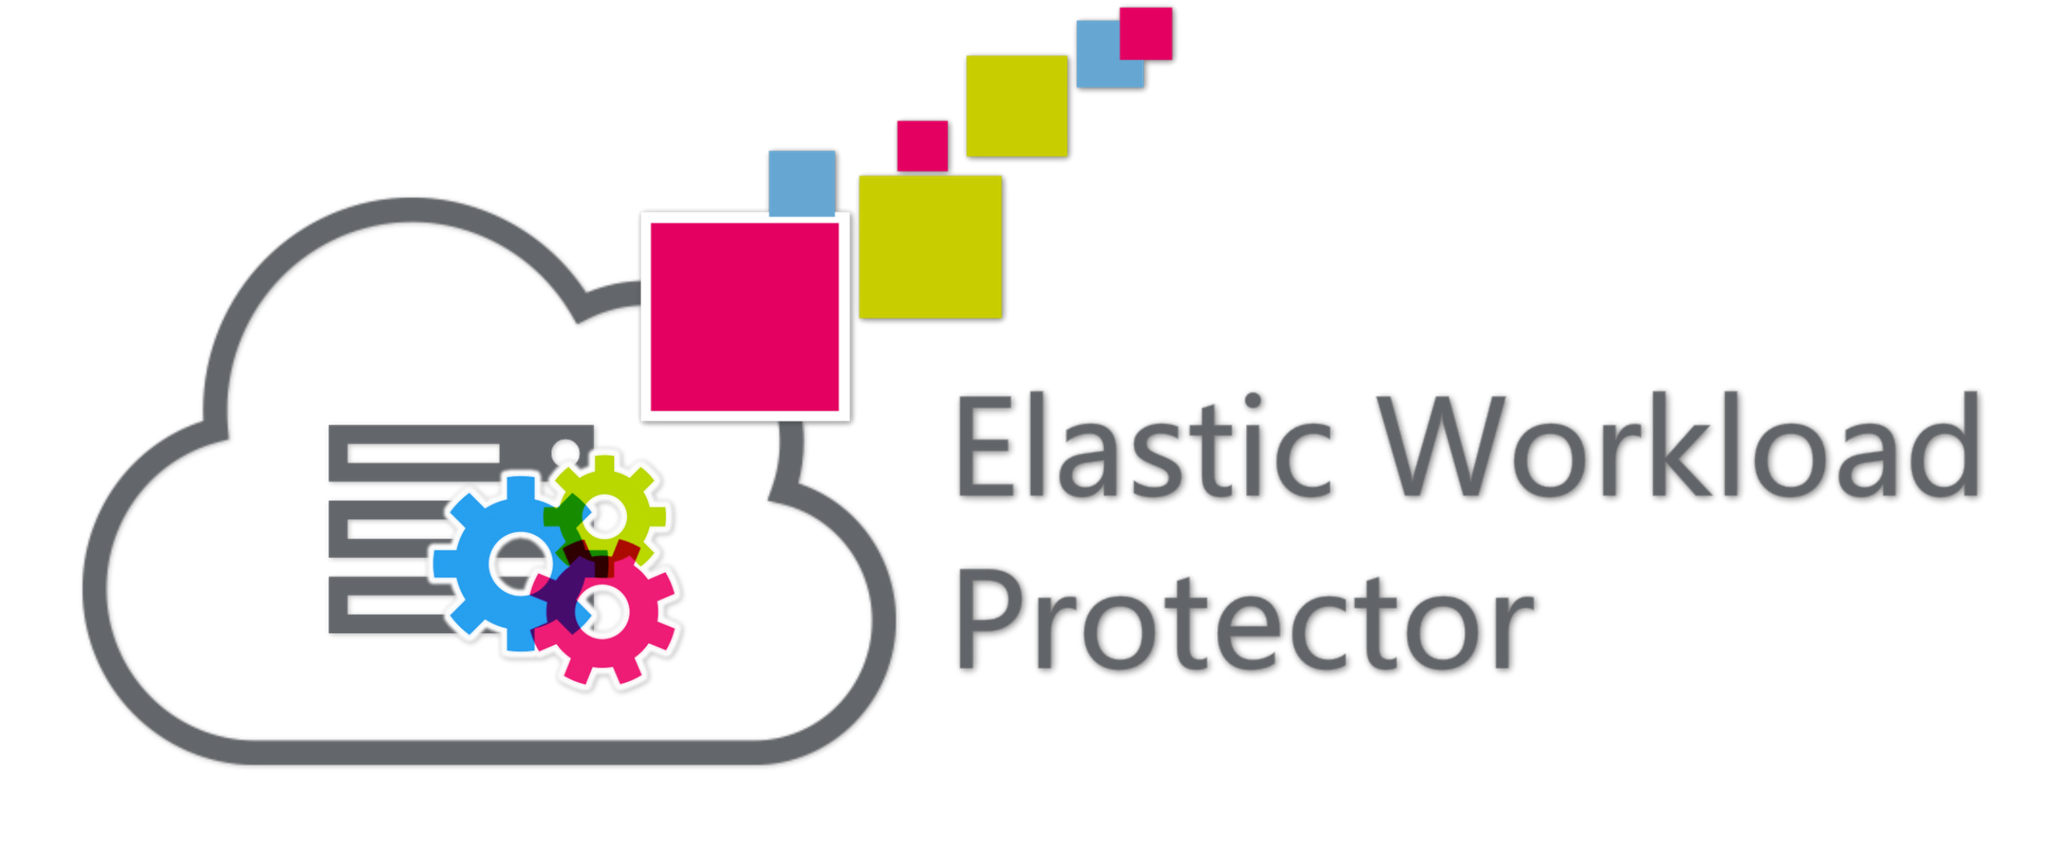 Review Elastic Workload Protector: EWP to protect your Cloud and containers - appvizer